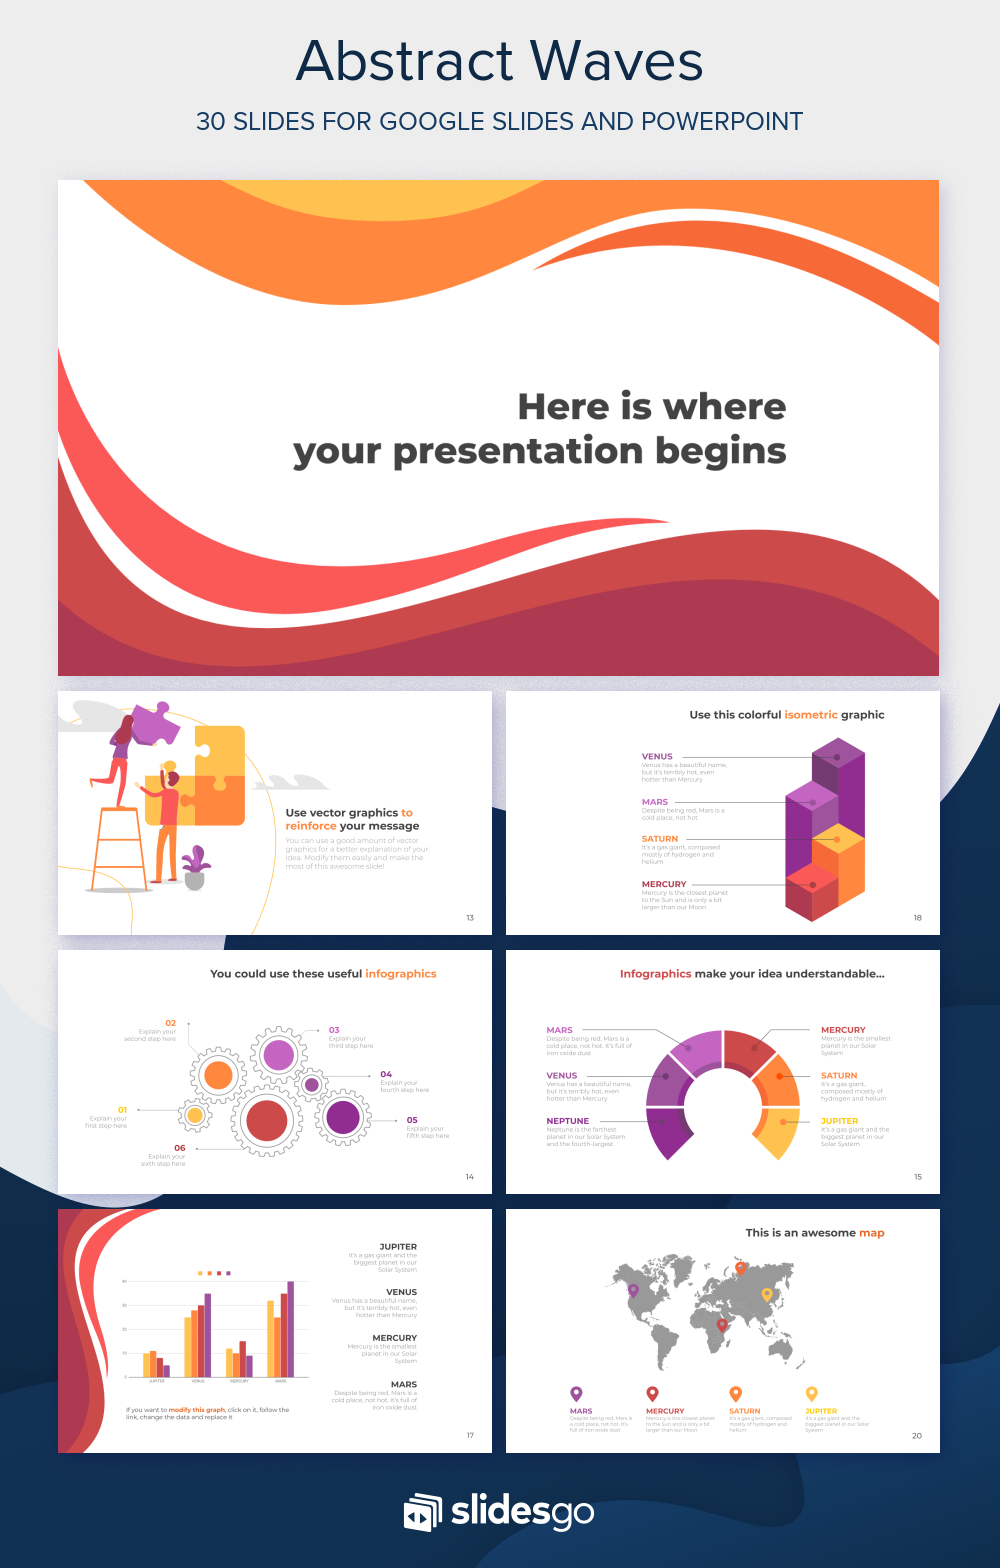 100 Free Template Available For Google Slides And Powerpoint You Can Use In Your Presentations Newsletter Design Templates Powerpoint Powerpoint Templates